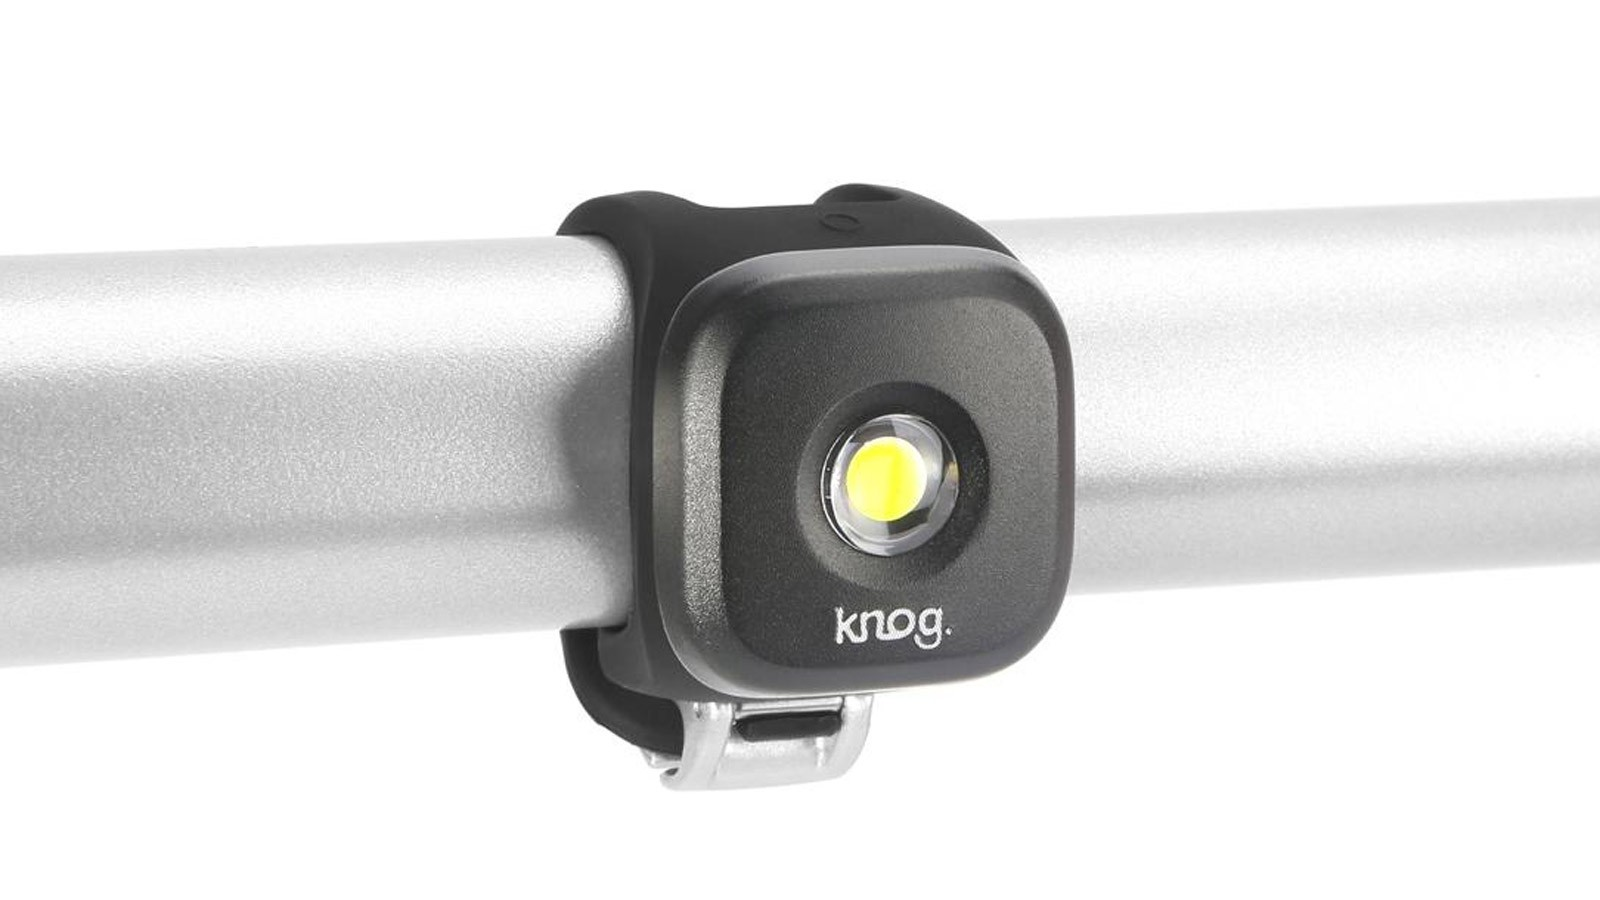 The Knog Blinder Front 1